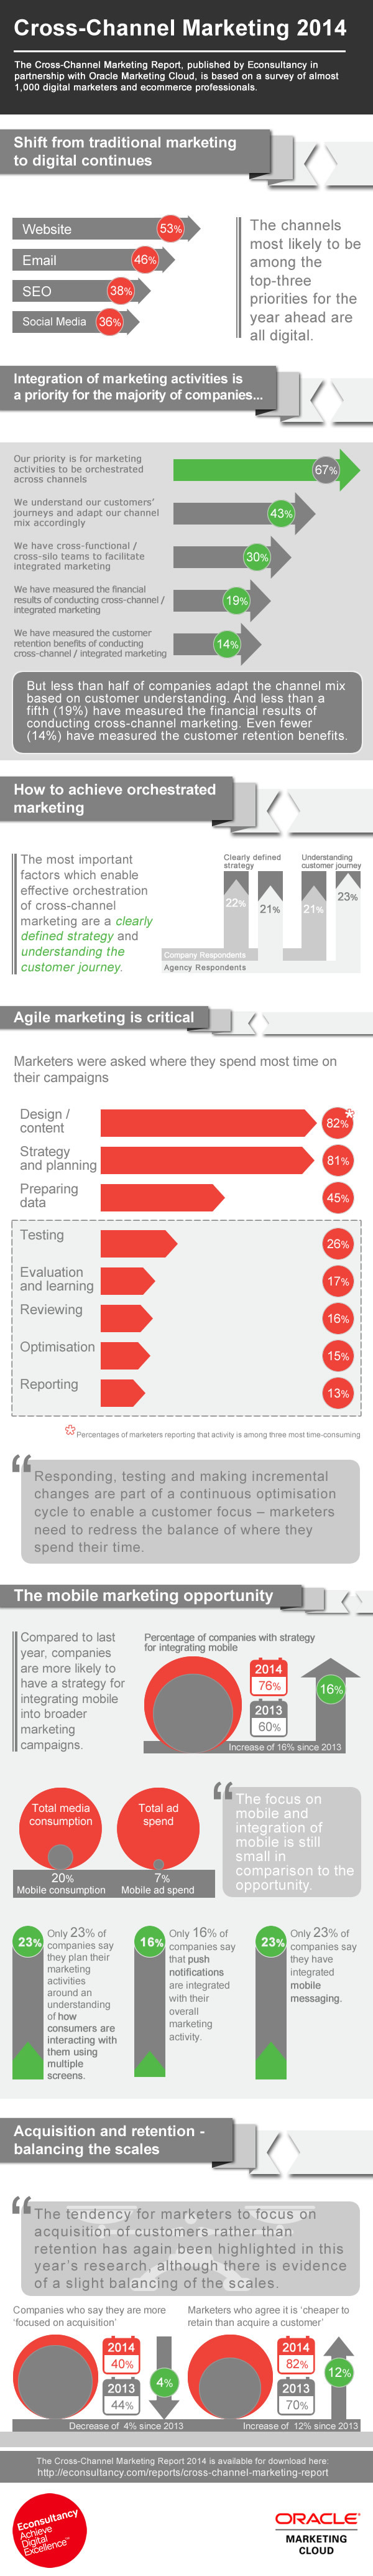 econsultancy-cross-channel-marketing-2014-infographic